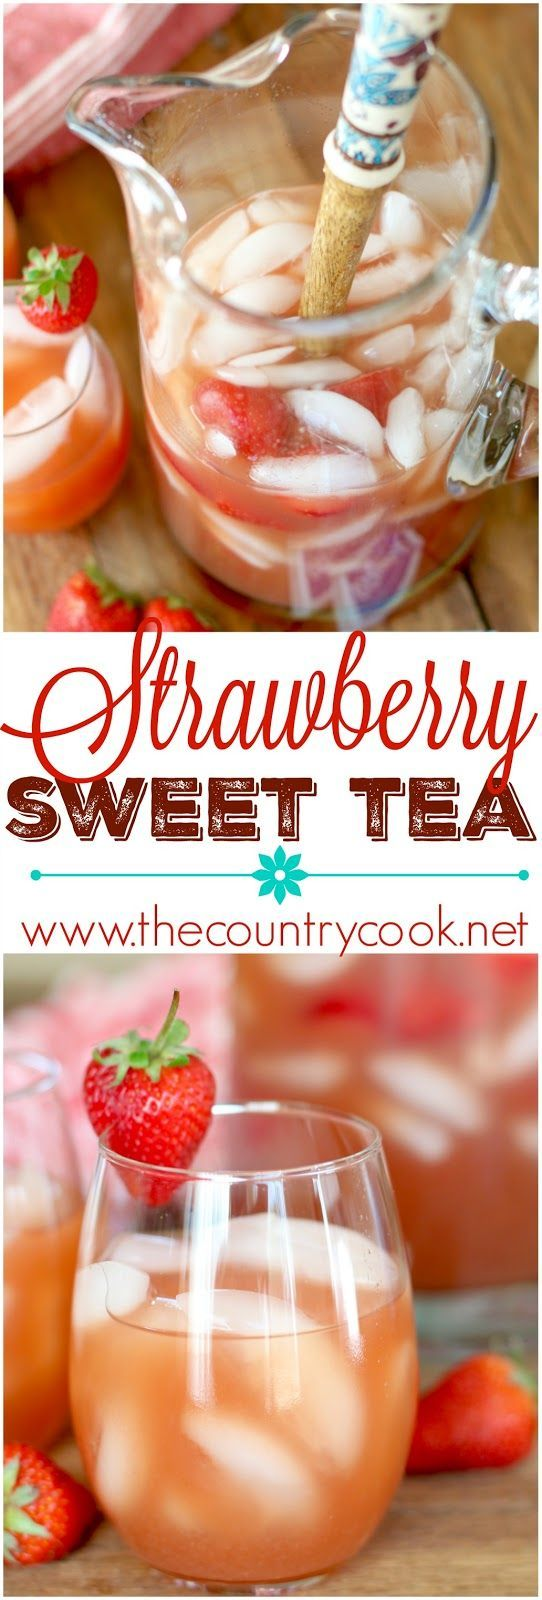 Strawberry Sweet Tea (Sugar Free) recipe (thanks to Equal®️️!) from The Country Cook. Summer in a glass. Perfect for parties or perfect for sitting on the porch on a hot day. Everyone fell in love with this drink when I made it! #EmbraceYourTaste #yummy #ad